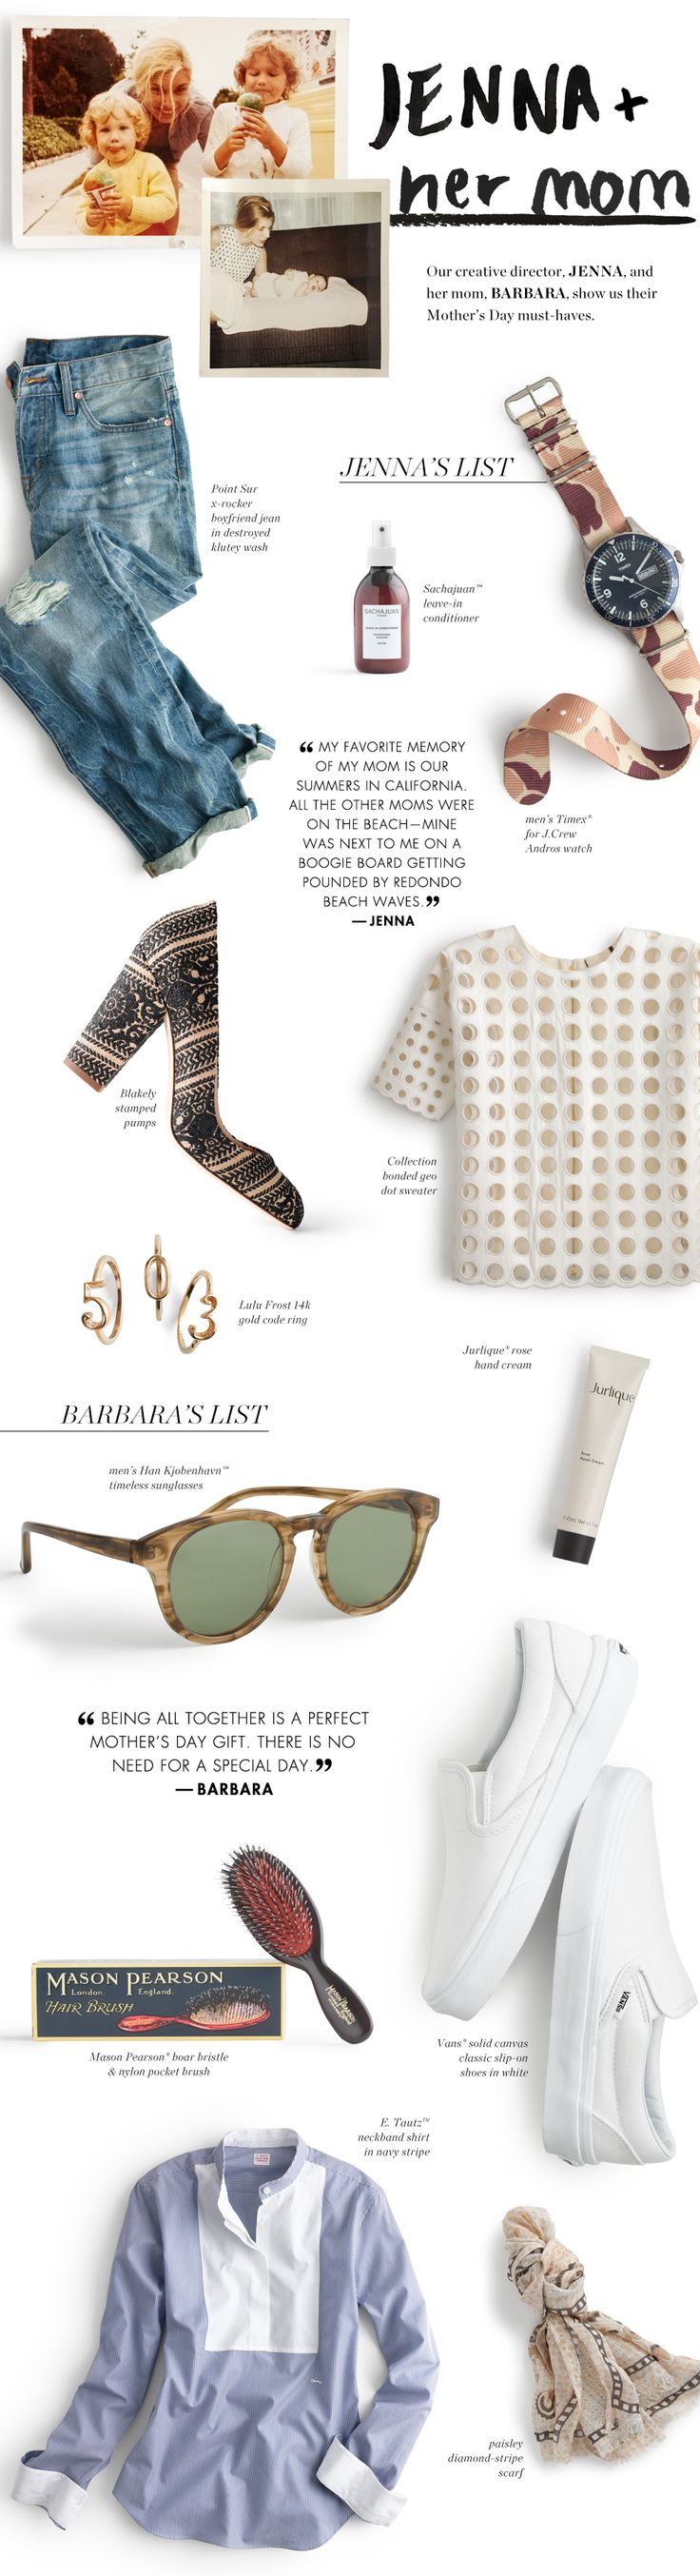 Mother's Day Gifts for Mom via J.Crew